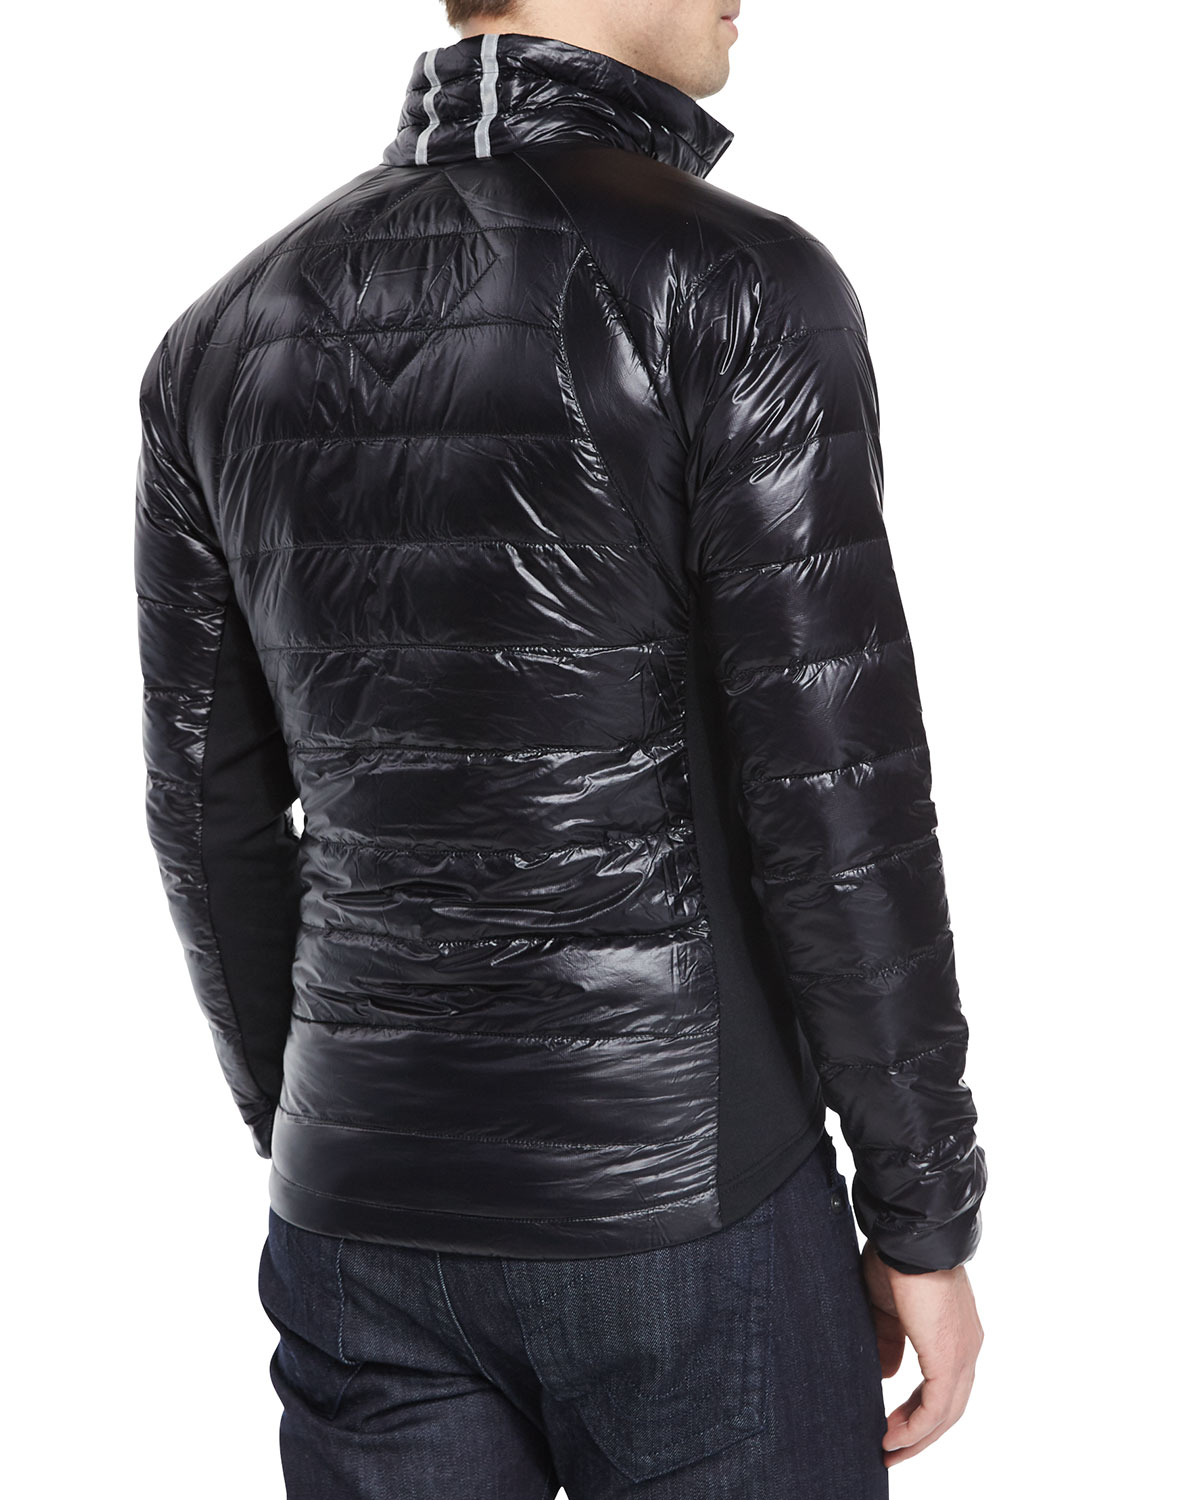 Canada Goose down replica store - New Style Canada Goose Vs Penfield With Best Discount On Hot Sale